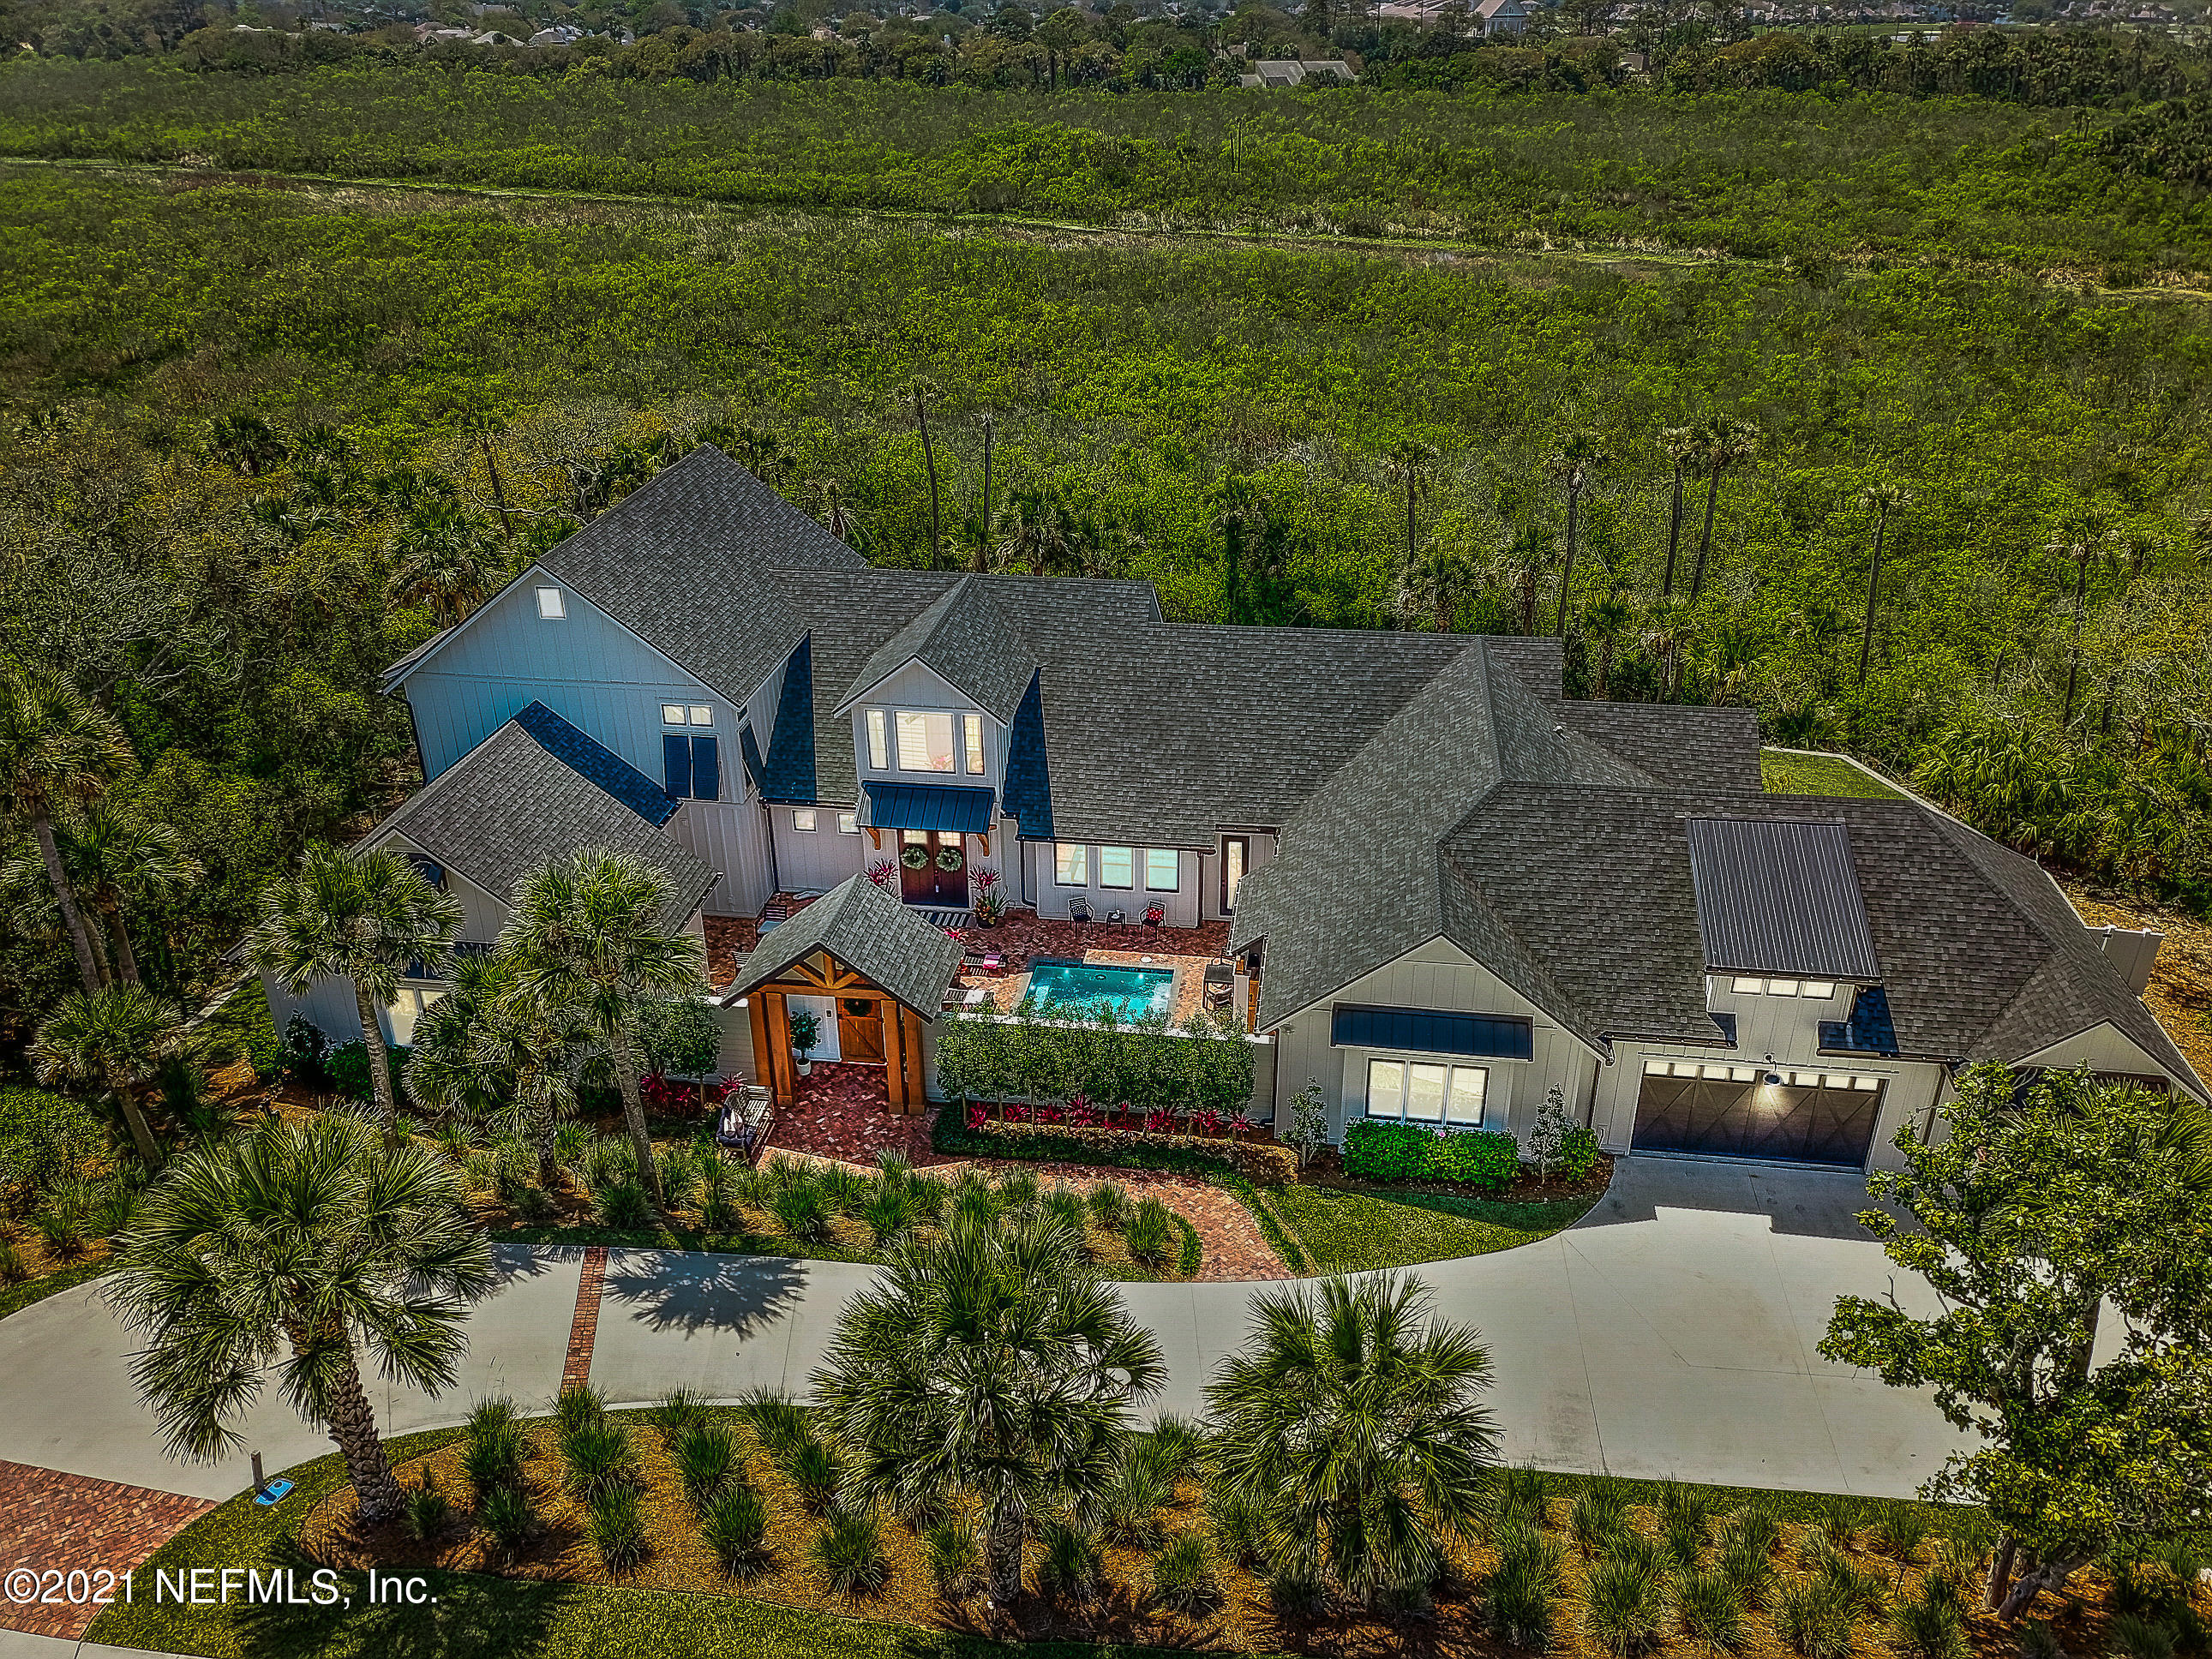 "Spectacular One of a Kind Home on Prestigious Ponte Vedra Blvd w/ Private Deeded Beach Access Has Too Many Features to list here see Attached Sheet with Specs. 200 ft Private Lot surrounded by Nature, Farmhouse Meets Beach House. Hickory Wood Floors, Stunning Gourmet Kitchen 9 ft Island, Shiplap, Oversized Black Light fixtures, Expansive Old Columbia Brick outdoor patios & entertaining space, Spa Owner's Bath Retreat, 3 Fireplaces, Courtyard Pool, Huge Column Fridge & Freezer, Lounge/Sitting Area, Casita w/En Suite Bath, Climate Controlled Summer Kitchen & Living Room w/Glass Rolling Door for indoor/outdoor living, Custom Solid Wood Cabinets in Kitchen, All Baths, Laundry, Mudroom w Custom Storage Bins, Bench, Heated Pool, *Listing Agent Holds an Interest in Property **24Hrs Notice to Show NOTABLE FEATURES The Crowning Jewel of this Spectacular Home is 15 Steps to Your Very Own Beach Access Where You will Enjoy Privacy & Seclusion with Breathtaking Sunrises and Glowing Sunset Skies!  Private/ Exclusive Single Owner Deeded Beach Access for this Parcel Only and Transfers with Property To All Future Owners  200 Ft Double Lot on Prestigious Ponte Vedra Blvd, this Private Homesite Backs Up to the Guana Nature Preserve, Protected Privacy Forever and Surrounded By Nature!  And, You Will Enjoy Stunning Unobstructed Sunset Views Every Day! An Unexpected Bonus is Your Very Own Firework Show Compliments of Sawgrass Every 4th of July the Fireworks Light Up the Sky Over Your Backyard and the Guana Preserve!  Highly Functional Floor Plan- Lives like a Single-story Home with Ground Floor 3-way Split Bedrooms for Privacy, with 2 Additional En Suite Bedrooms on the Second Floor and Separate Casita with Huge Bedroom and En Suite Bath  Custom Distressed Hickory Wood Flooring Throughout All Living Spaces  Spectacular Gourmet Kitchen Featuring a Huge Custom Solid Wood 9+ foot Island with Quartz surface, Wolf Appliances: 48 inch 8 Burner Natural Gas Range and Two Ovens, Wolf Microwave/Convection Oven, Wolf Warming Drawer, Huge Double Column Stainless Steel Refrigerator / Freezer, Farmhouse Sink, Pot Filler, Custom Solid Wood Cabinets with Quartz Counter Tops, Utensil & Spice Organizers, Slide-out Shelves All Base Door Cabinets, Soft Close Doors & Drawers, this Kitchen has Enormous Storage Capacity with Floor to Ceiling Cabinets with Crown Moulding and a Total of 86 Doors and Drawers! Stunning Oversized Stainless Steel Hood flanked by Custom Cedar Floating Shelves, Very Large Pantry with floor to ceiling built-in Shelving for tons of food and appliance storage  Custom Coffee / Espresso Room with Sink, Custom Solid Wood Cabinets, Quarts Surface & Cedar Floating Shelves  Spa Retreat in Owner's En Suite Bath Featuring 12.7 ft x 8.5 ft Shower Area (yes you read that correctly, it's Gigantic!) with Gorgeous Soaking Tub Overlooking Private Enclosed Courtyard, Oversized Custom All Wood Cabinets & Quartz Tops, Double Sinks with Lots of Storage & Private Water Closet Owner's Suite Custom Closets Feel like A Private Concierge Shopping Experience! Her  Closet is 14 ft x 10 ft, His Closet is 14 ft x 8 ft  Owner's Suite Features Floor to Ceiling Windows with Stunning Expansive Nature Preserve Views, Cedar Beams, Floor to Ceiling Shiplap Fireplace and Cedar Mantel   Perfectly Appointed Climate-Controlled Summer Kitchen & Living Room/Entertainment Area with Linear Fireplace and the Coolest Glass & Black Framed Rolling Door for that WOW Indoor/Outdoor Entertainment Experience!  Salt-Water Pool, with Gas Heater Featuring Phone/Mobile Device/PC Software App to run all pool/heater functions remotely. Private Enclosed Outdoor Shower with Hot & Cold Water Perfect After a Day at the Beach or Pool  Custom Cedar Beams, 3 Cedar Fireplace Mantels & Cedar Floating Shelves Millwork Throughout Floor to Ceiling Shiplap, Board & Batten, and 8 Inch High Baseboards Throughout Premium Custom Order Bali Top Down/Bottom Up Cordless Shades on Every Window 14 French Doors throughout with Rise/Tilt built-in Blinds  9 Functional Barn Doors throughout the home 4 Custom Made Black Oversized Barn Doors for both Style & Function Lighting Fixtures throughout: Chandeliers, Pendants, Goose Neck And Too Many LED Recessed Lighting Fixtures to Count! 8 Oversized Ceiling Fans Throughout & All Bedrooms Huge Mud/Sand Room with Custom Solid Wood Storage System with Bench, Hooks & Cubbies  Oversized Bedrooms- All Featuring Custom Closet Organizers, En Suite Baths, Ceiling Fans  Beautiful Courtyard Design with Saltwater Pool-- with tons of outdoor space ideal for Entertaining  Old Columbia Brick Pavers extensively used throughout all outdoor front and rear Entertainment Spaces/Patios  6 HVAC thermostats for zone control   Pella Impervia windows featuring ""Black"" exterior & interior sashes  Foam Insulation for Energy Efficiency   Smarthome Mobile Apps: HVAC, Garage Doors, Pool Heater & Equipment, Security System, Ring-doorbell, Exterior Front Door & Casita Door Locks  Motion Sensor Lighting most Rooms Throughout Home  Premium Spa Inspired Bath Shower Fixtures and Lav Faucets Throughout Timeless Marble Basket Weave and other Custom Tile Designs in all bathrooms Large Oversized Black Iron Lighting fixtures, LED under Kitchen Cabinet Lighting & Floating Cedar shelves  Modern 6 ft Linear Fireplaces Featured in the Great Room, Owner's Suite and Patio/Summer Kitchen Living Room Area Black Hardware on All Doors Throughout  Premium Black Gutters with Round-Down Spouts and Underground Drainage for Rainwater Management Oversized 30' deep garage for large SUV/Truck/Boat Natural Gas for Cooking Appliances, Summer Kitchen, Pool Heater, and Two On-Demand Hot Water Heaters Commercial Grade Water Filtration & Water Softener System Huge Driveway Accommodates A Lot of Cars for Big Entertainment Events & Guest  Irrigation System throughout Entire Property and on a Well for No Cost Maintenance Lushly Landscaped and Professionally Maintained ALL/MOST FURNITURE AVAILABLE FOR PURCHASE SEPARATELY"